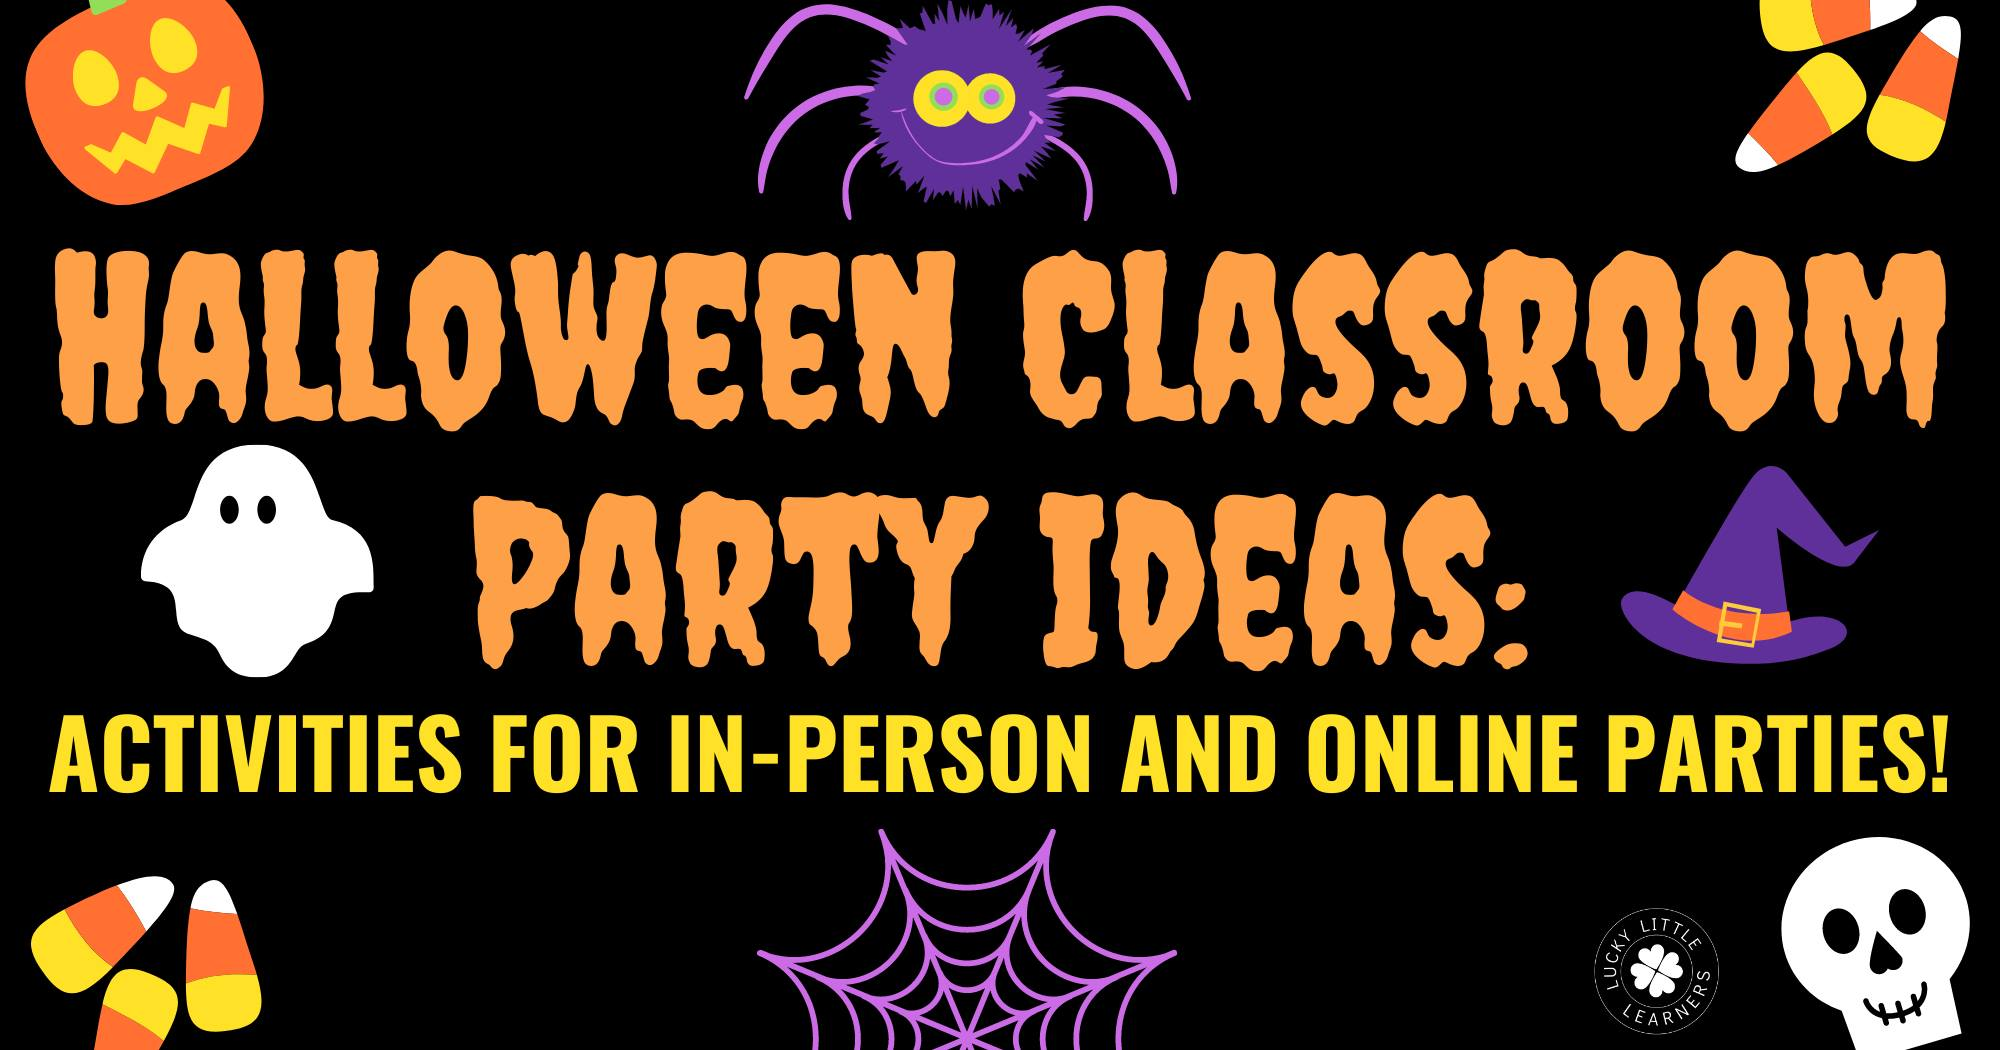 Halloween Classroom Party Ideas: Activities For In-Person AND Online Parties!